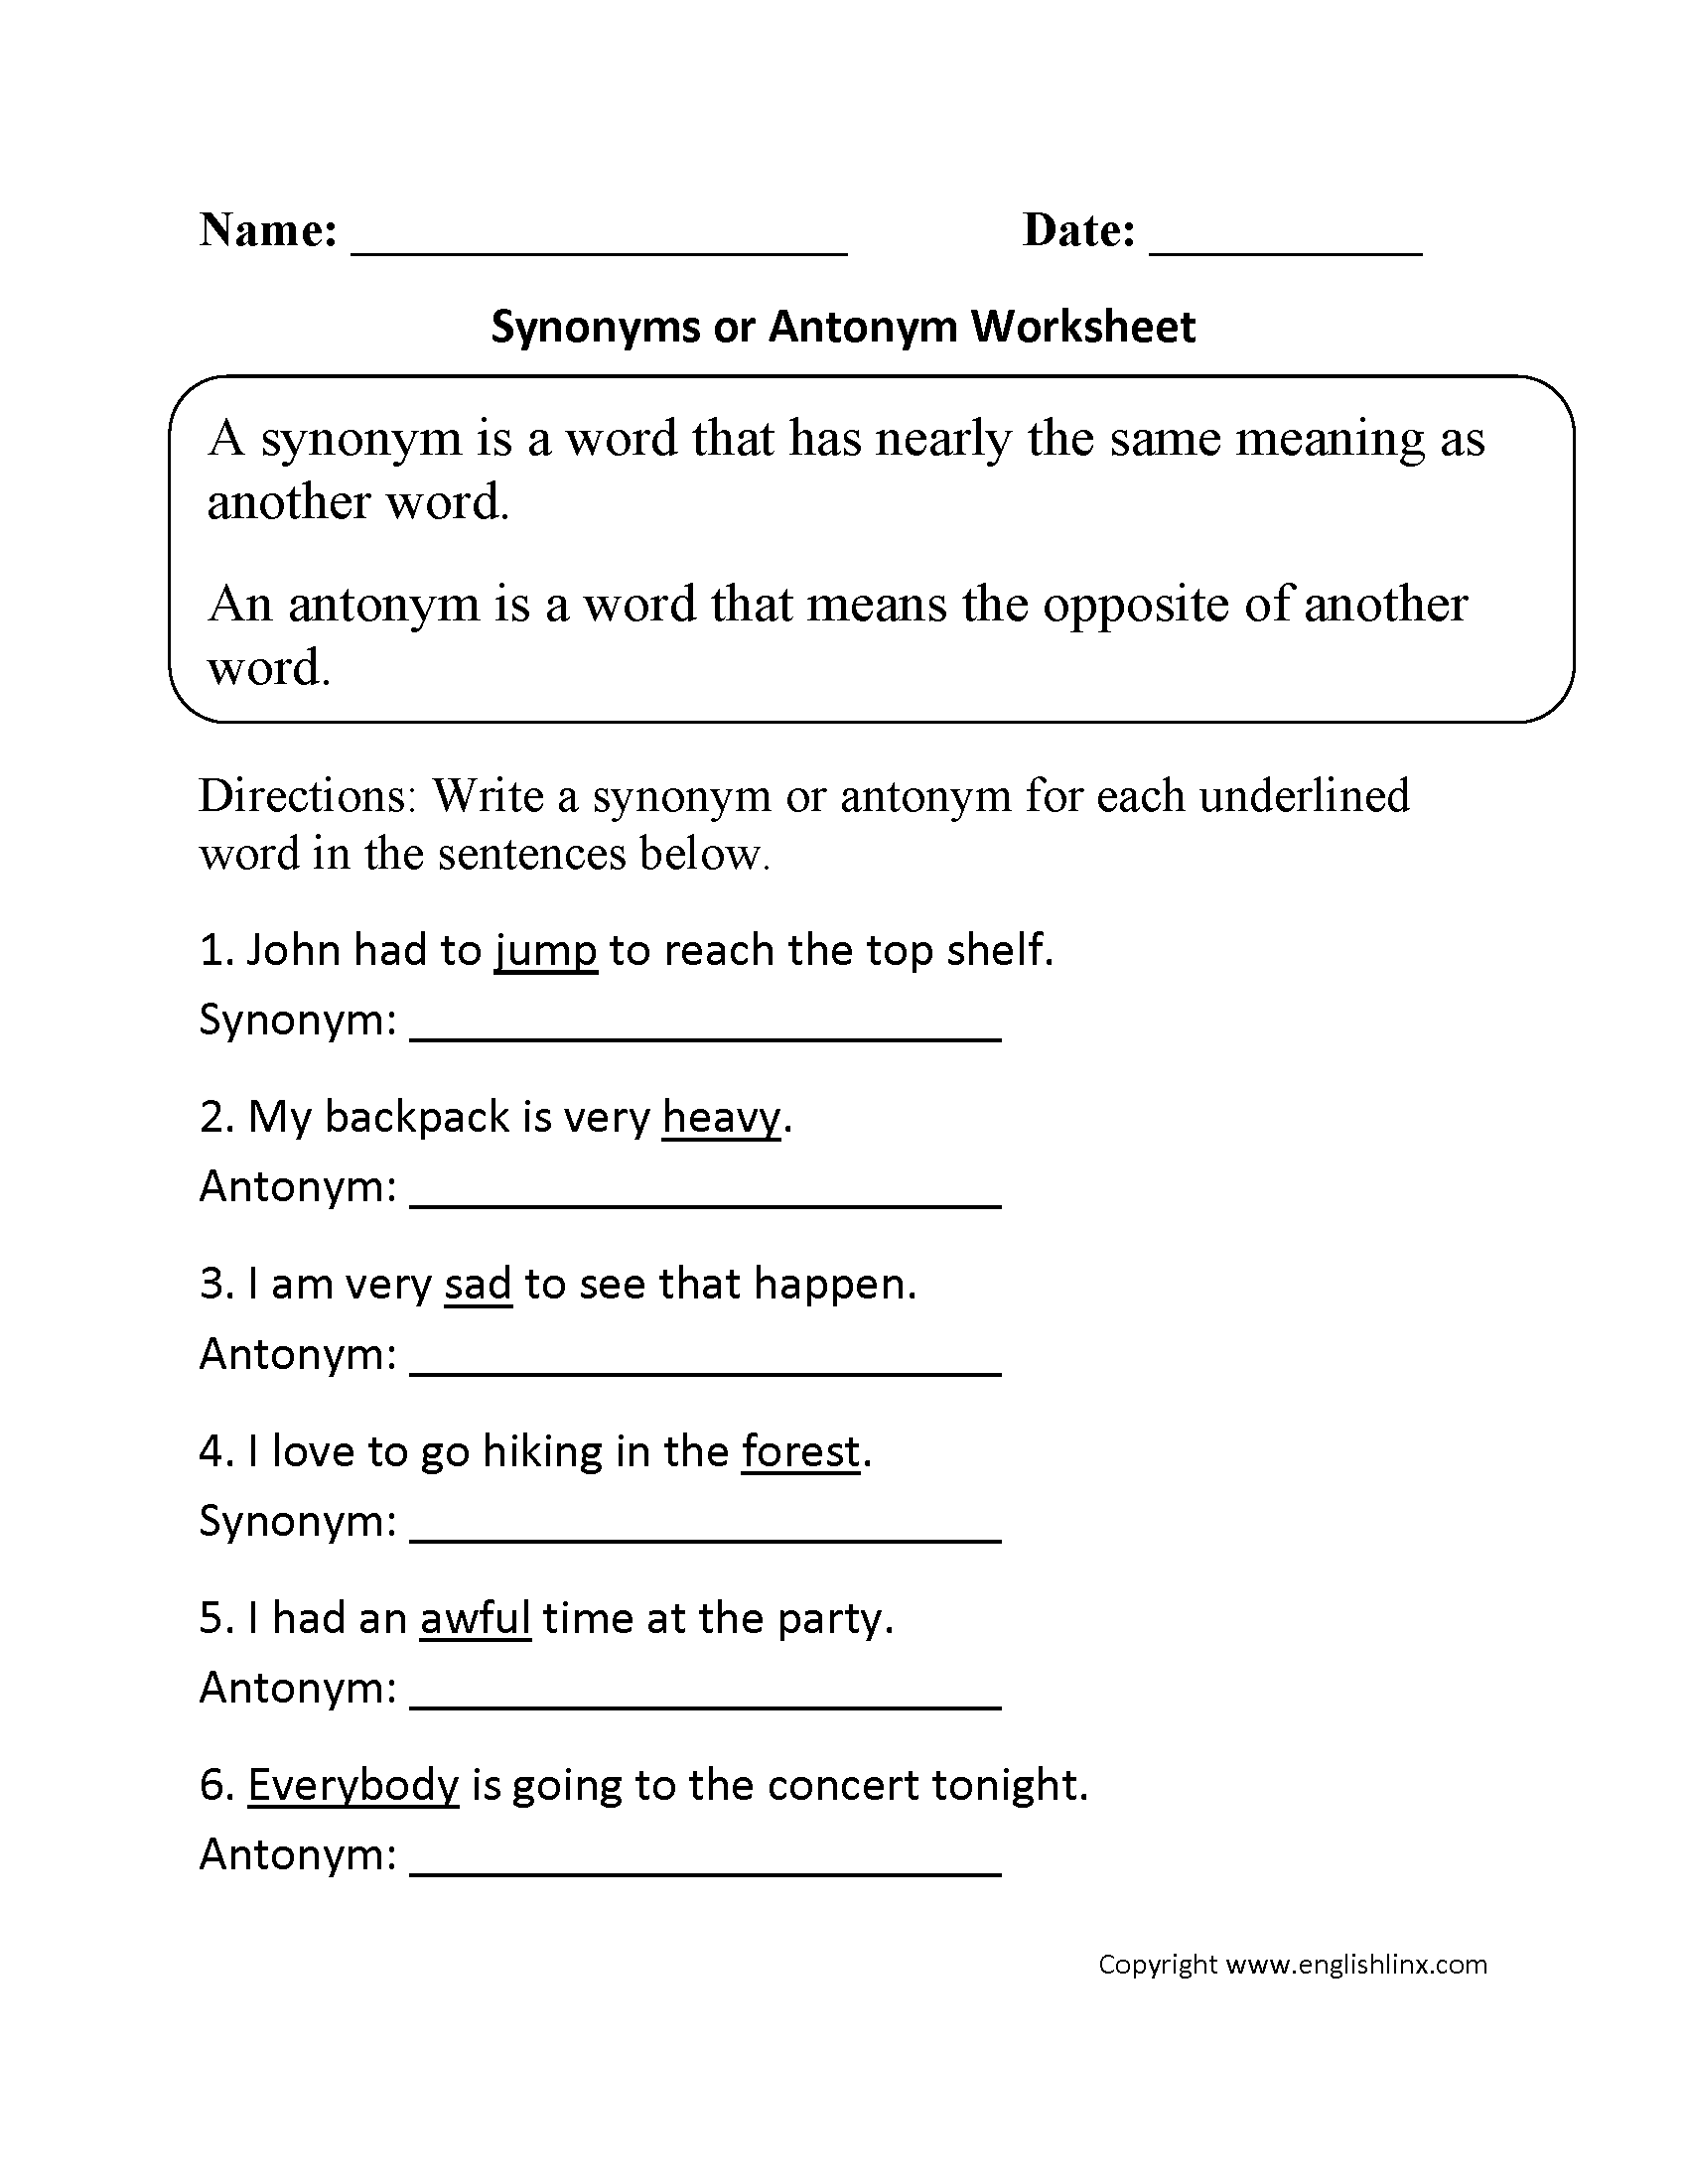 Worksheets Synonyms Worksheet vocabulary worksheets synonym and antonym or worksheet